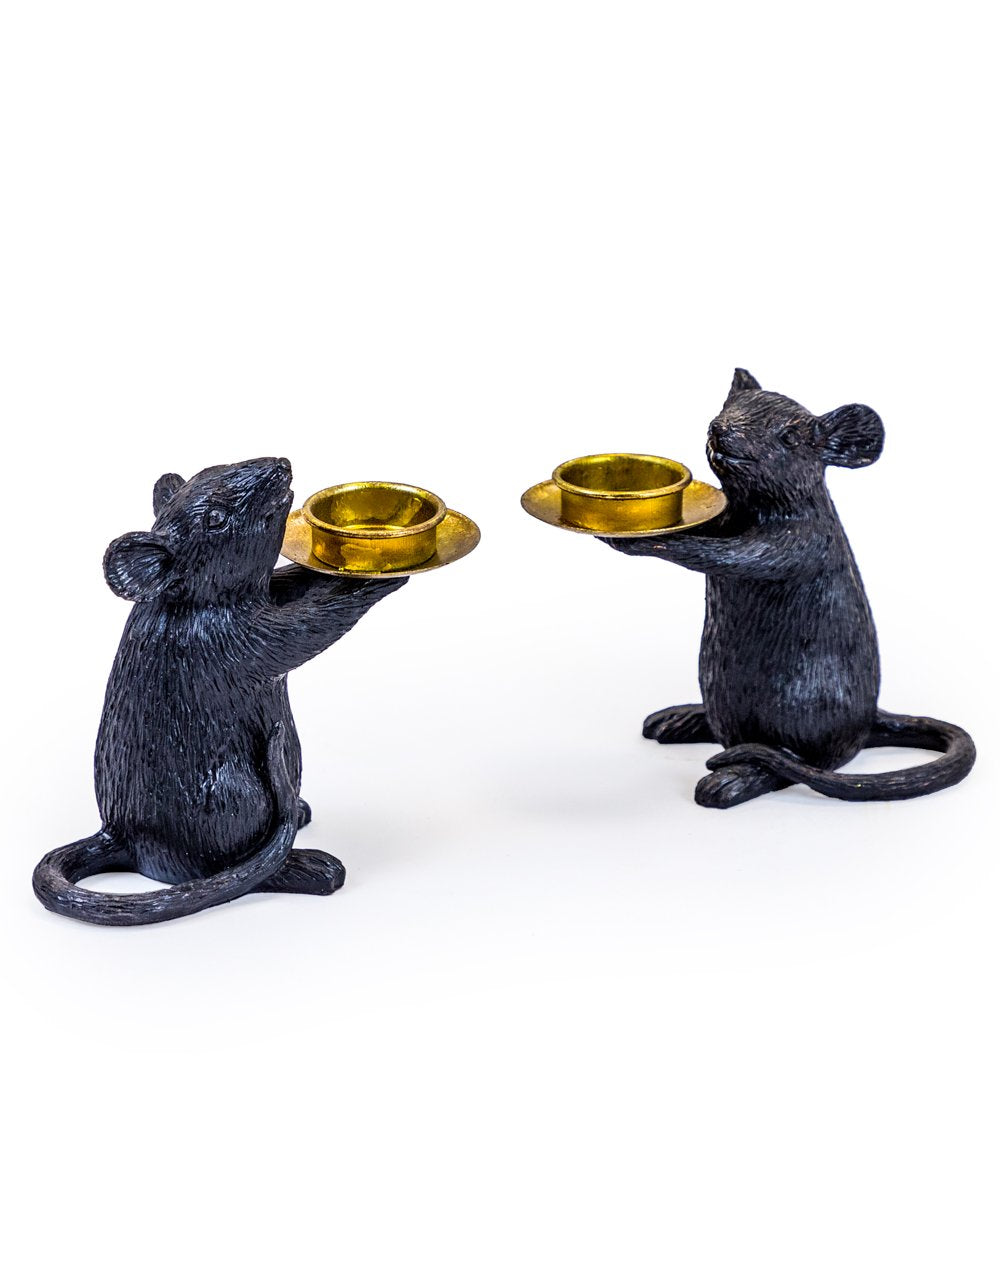 Black Mice Tea LIght Holders set of two